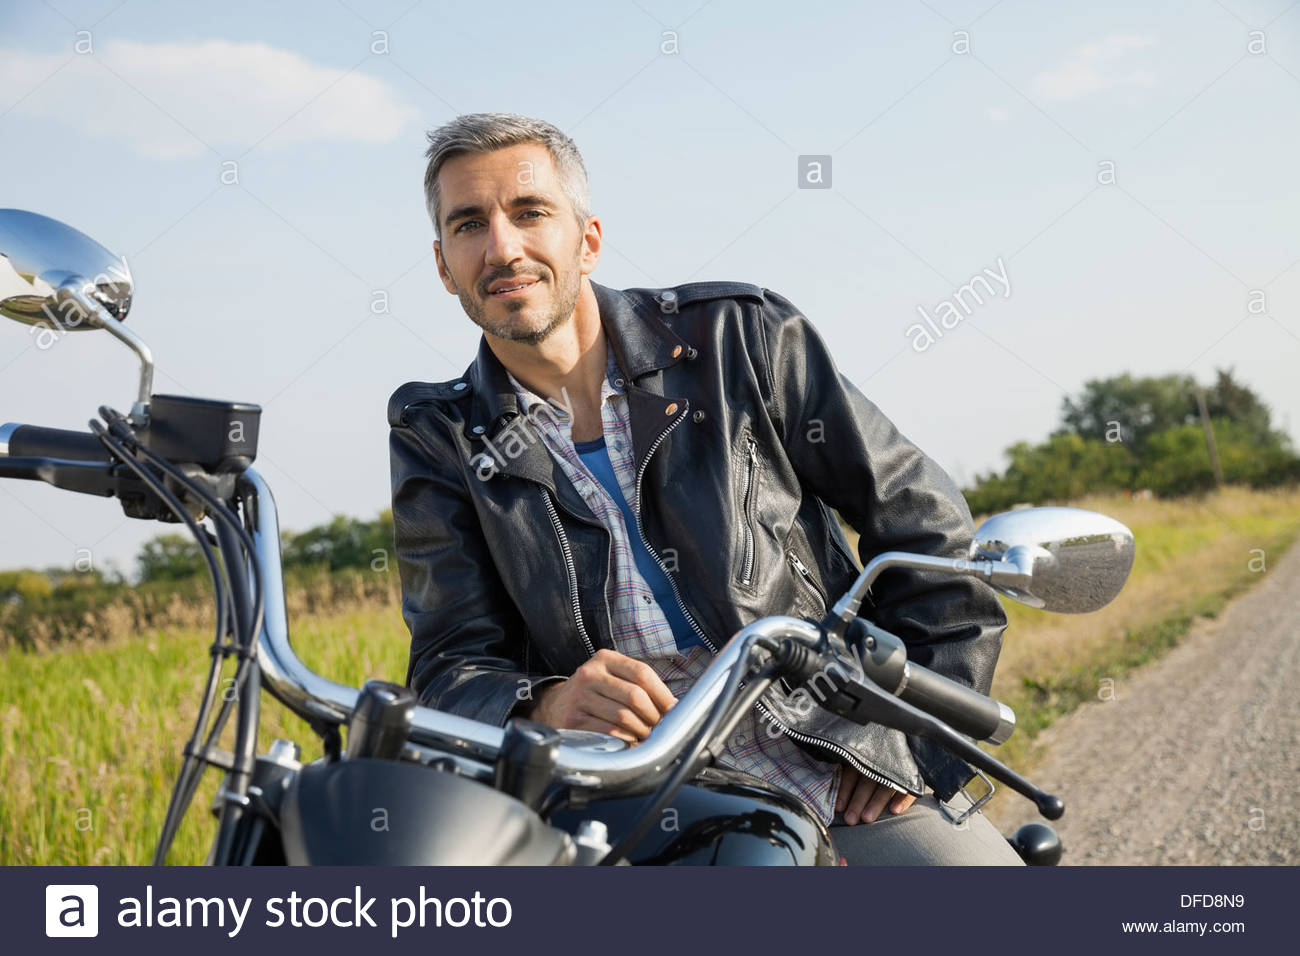 Portrait of confident biker sitting on motorcycle - Stock Image